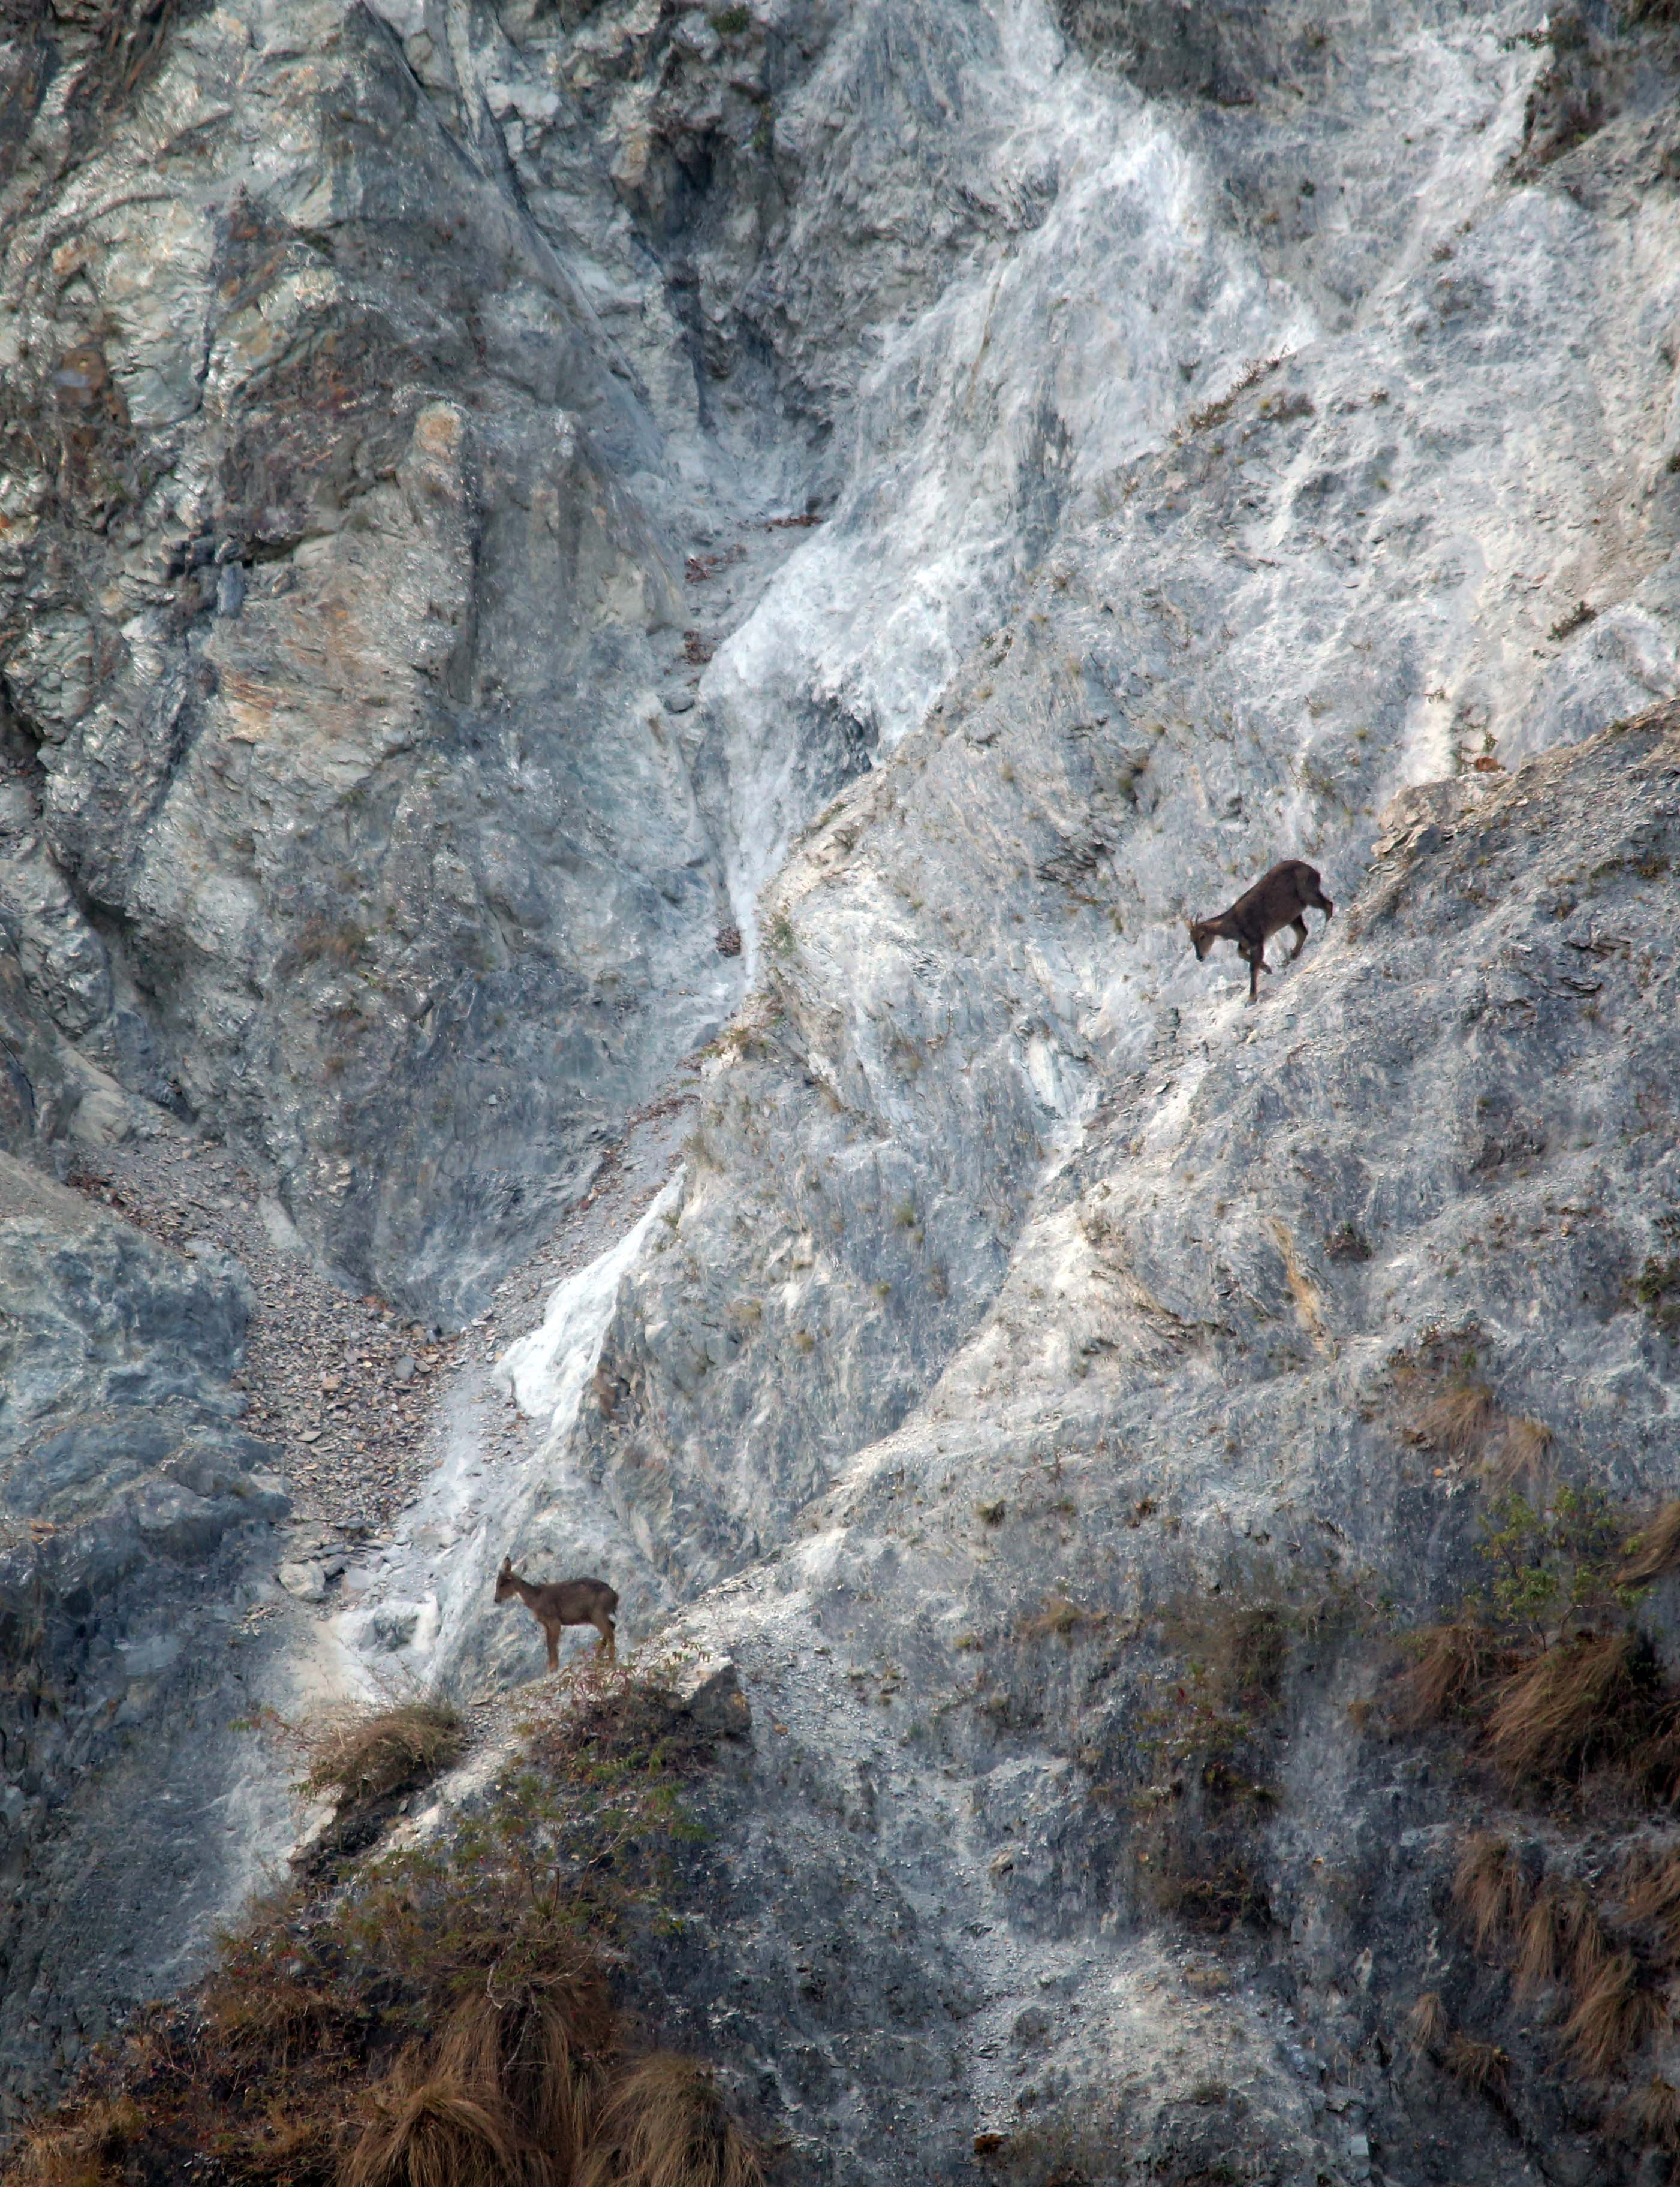 Active at dawn and dusk, the goral can camouflage itself well on rocky ledges and is not easily spotted. Photo: Surya Ramachandran